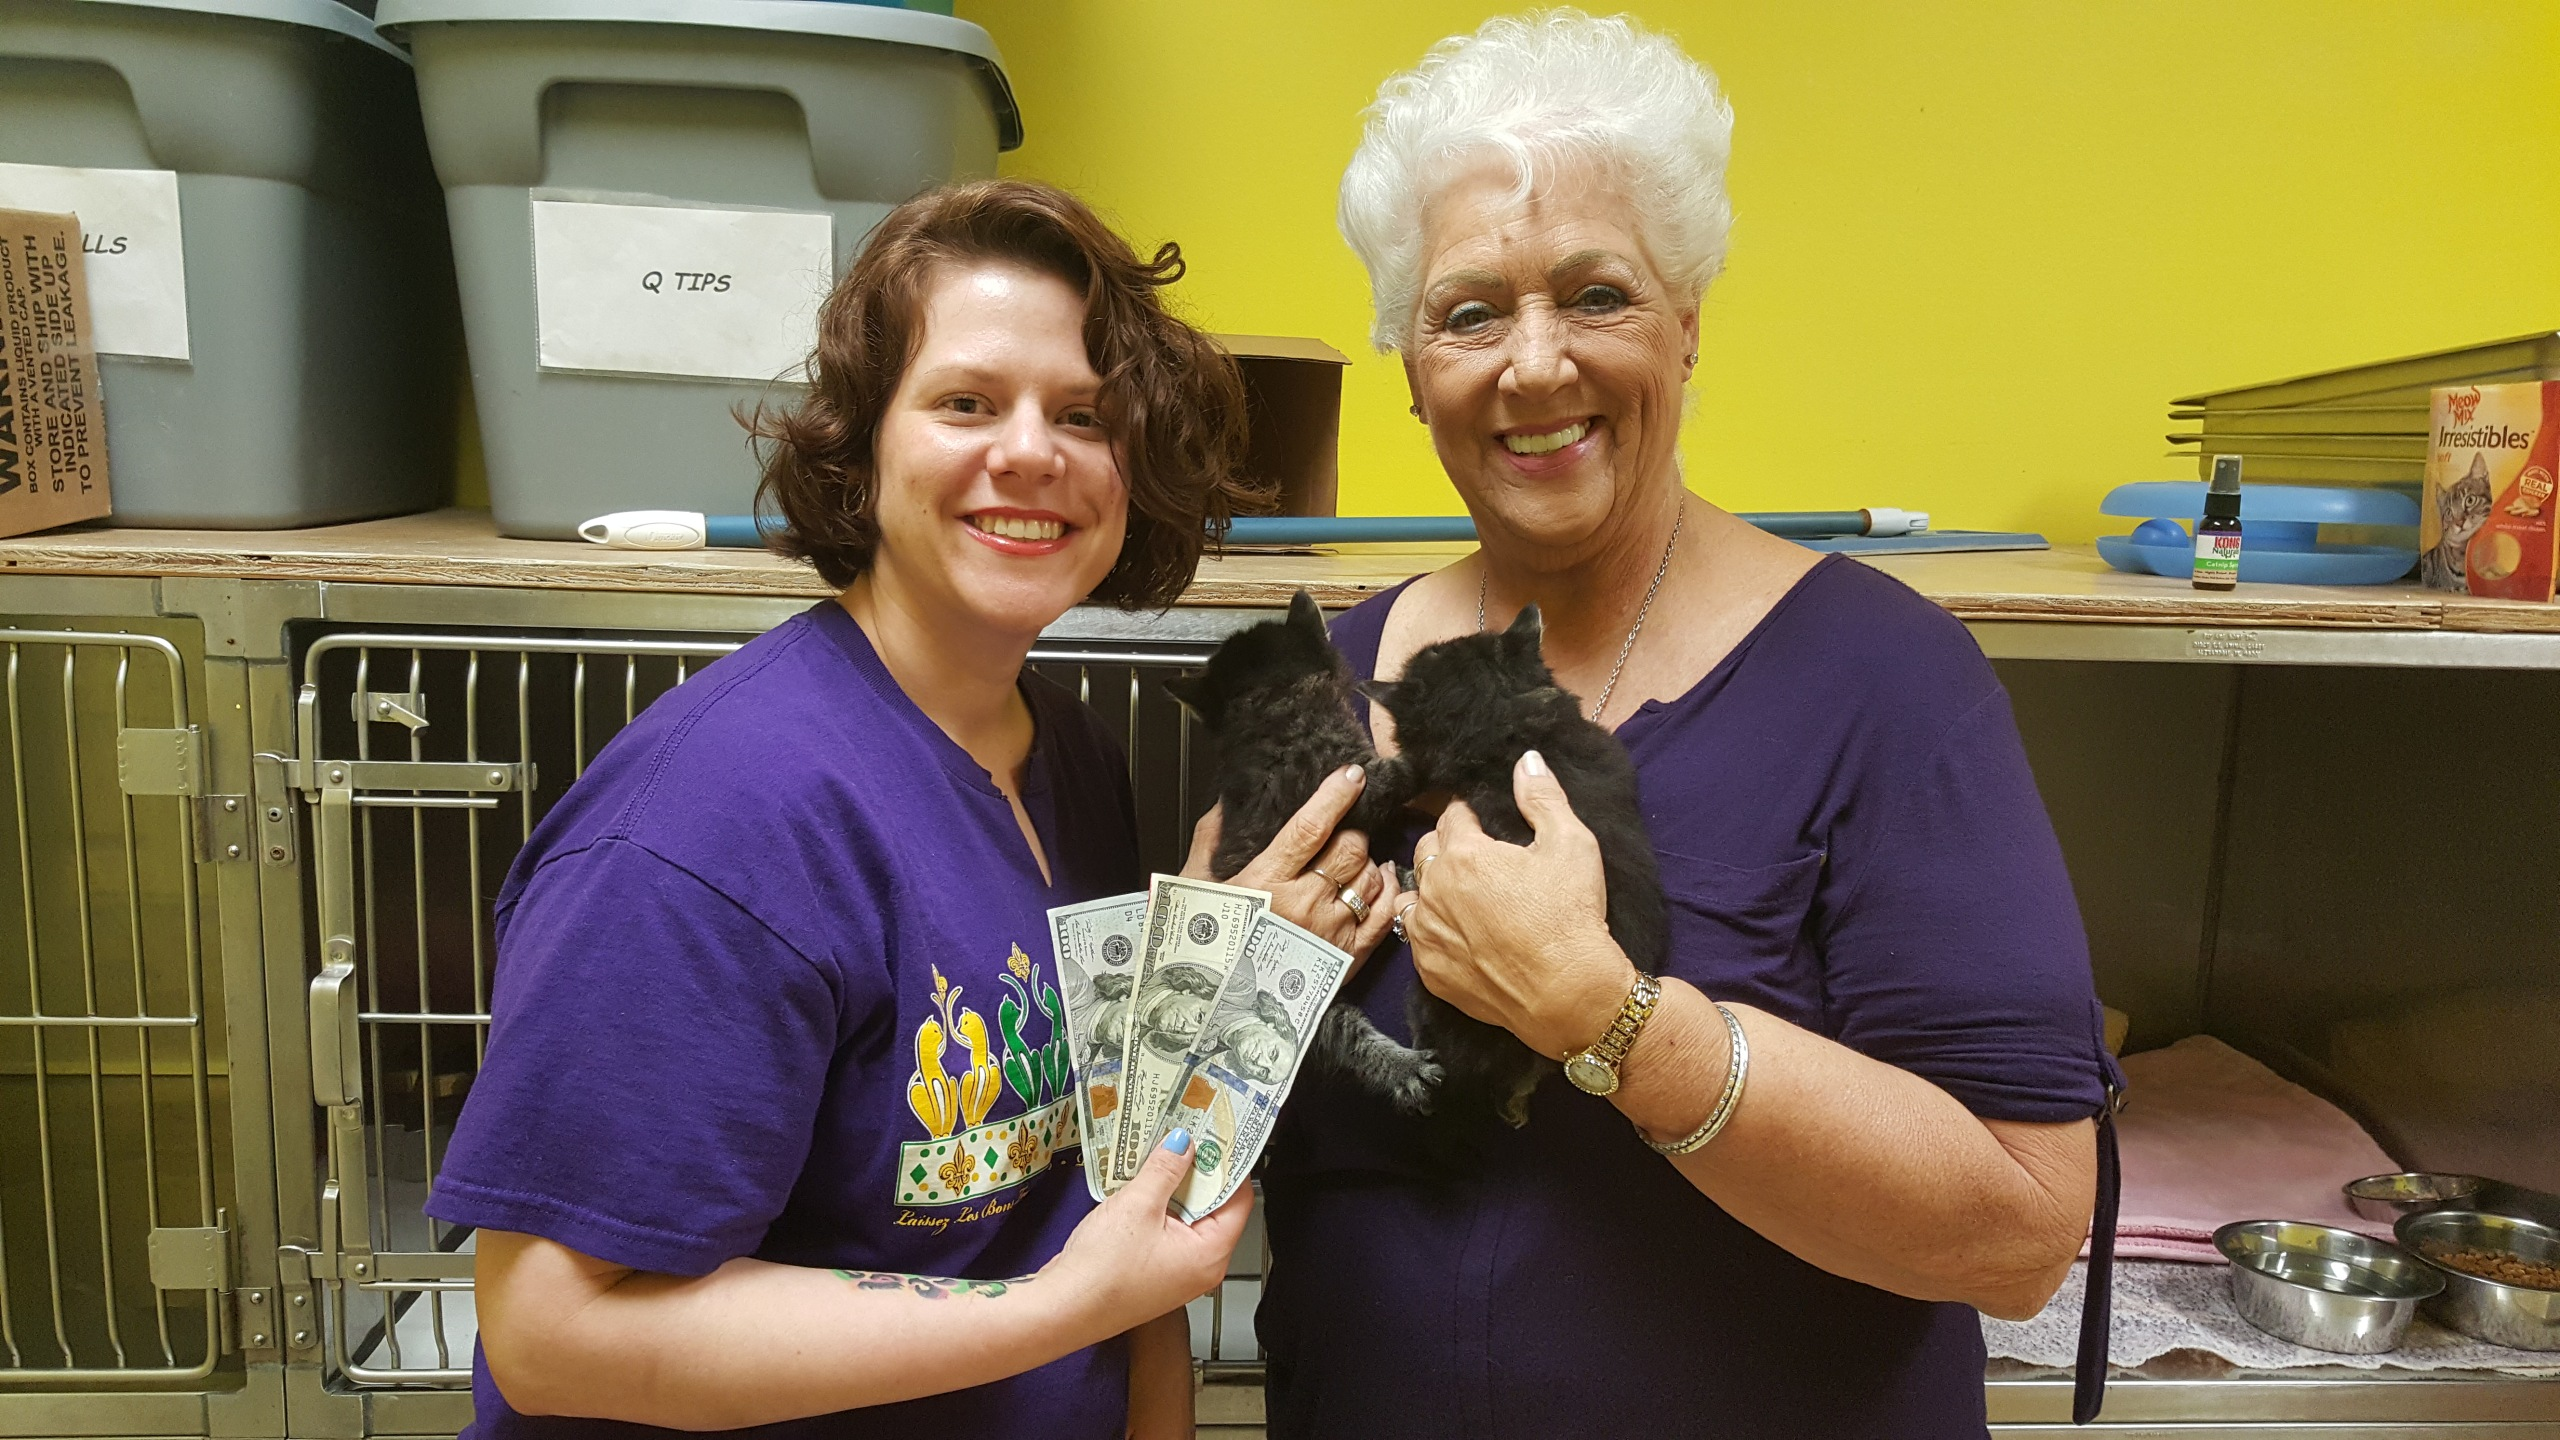 PIF KITTEN MITTENS CATS PAY IT FORWARD